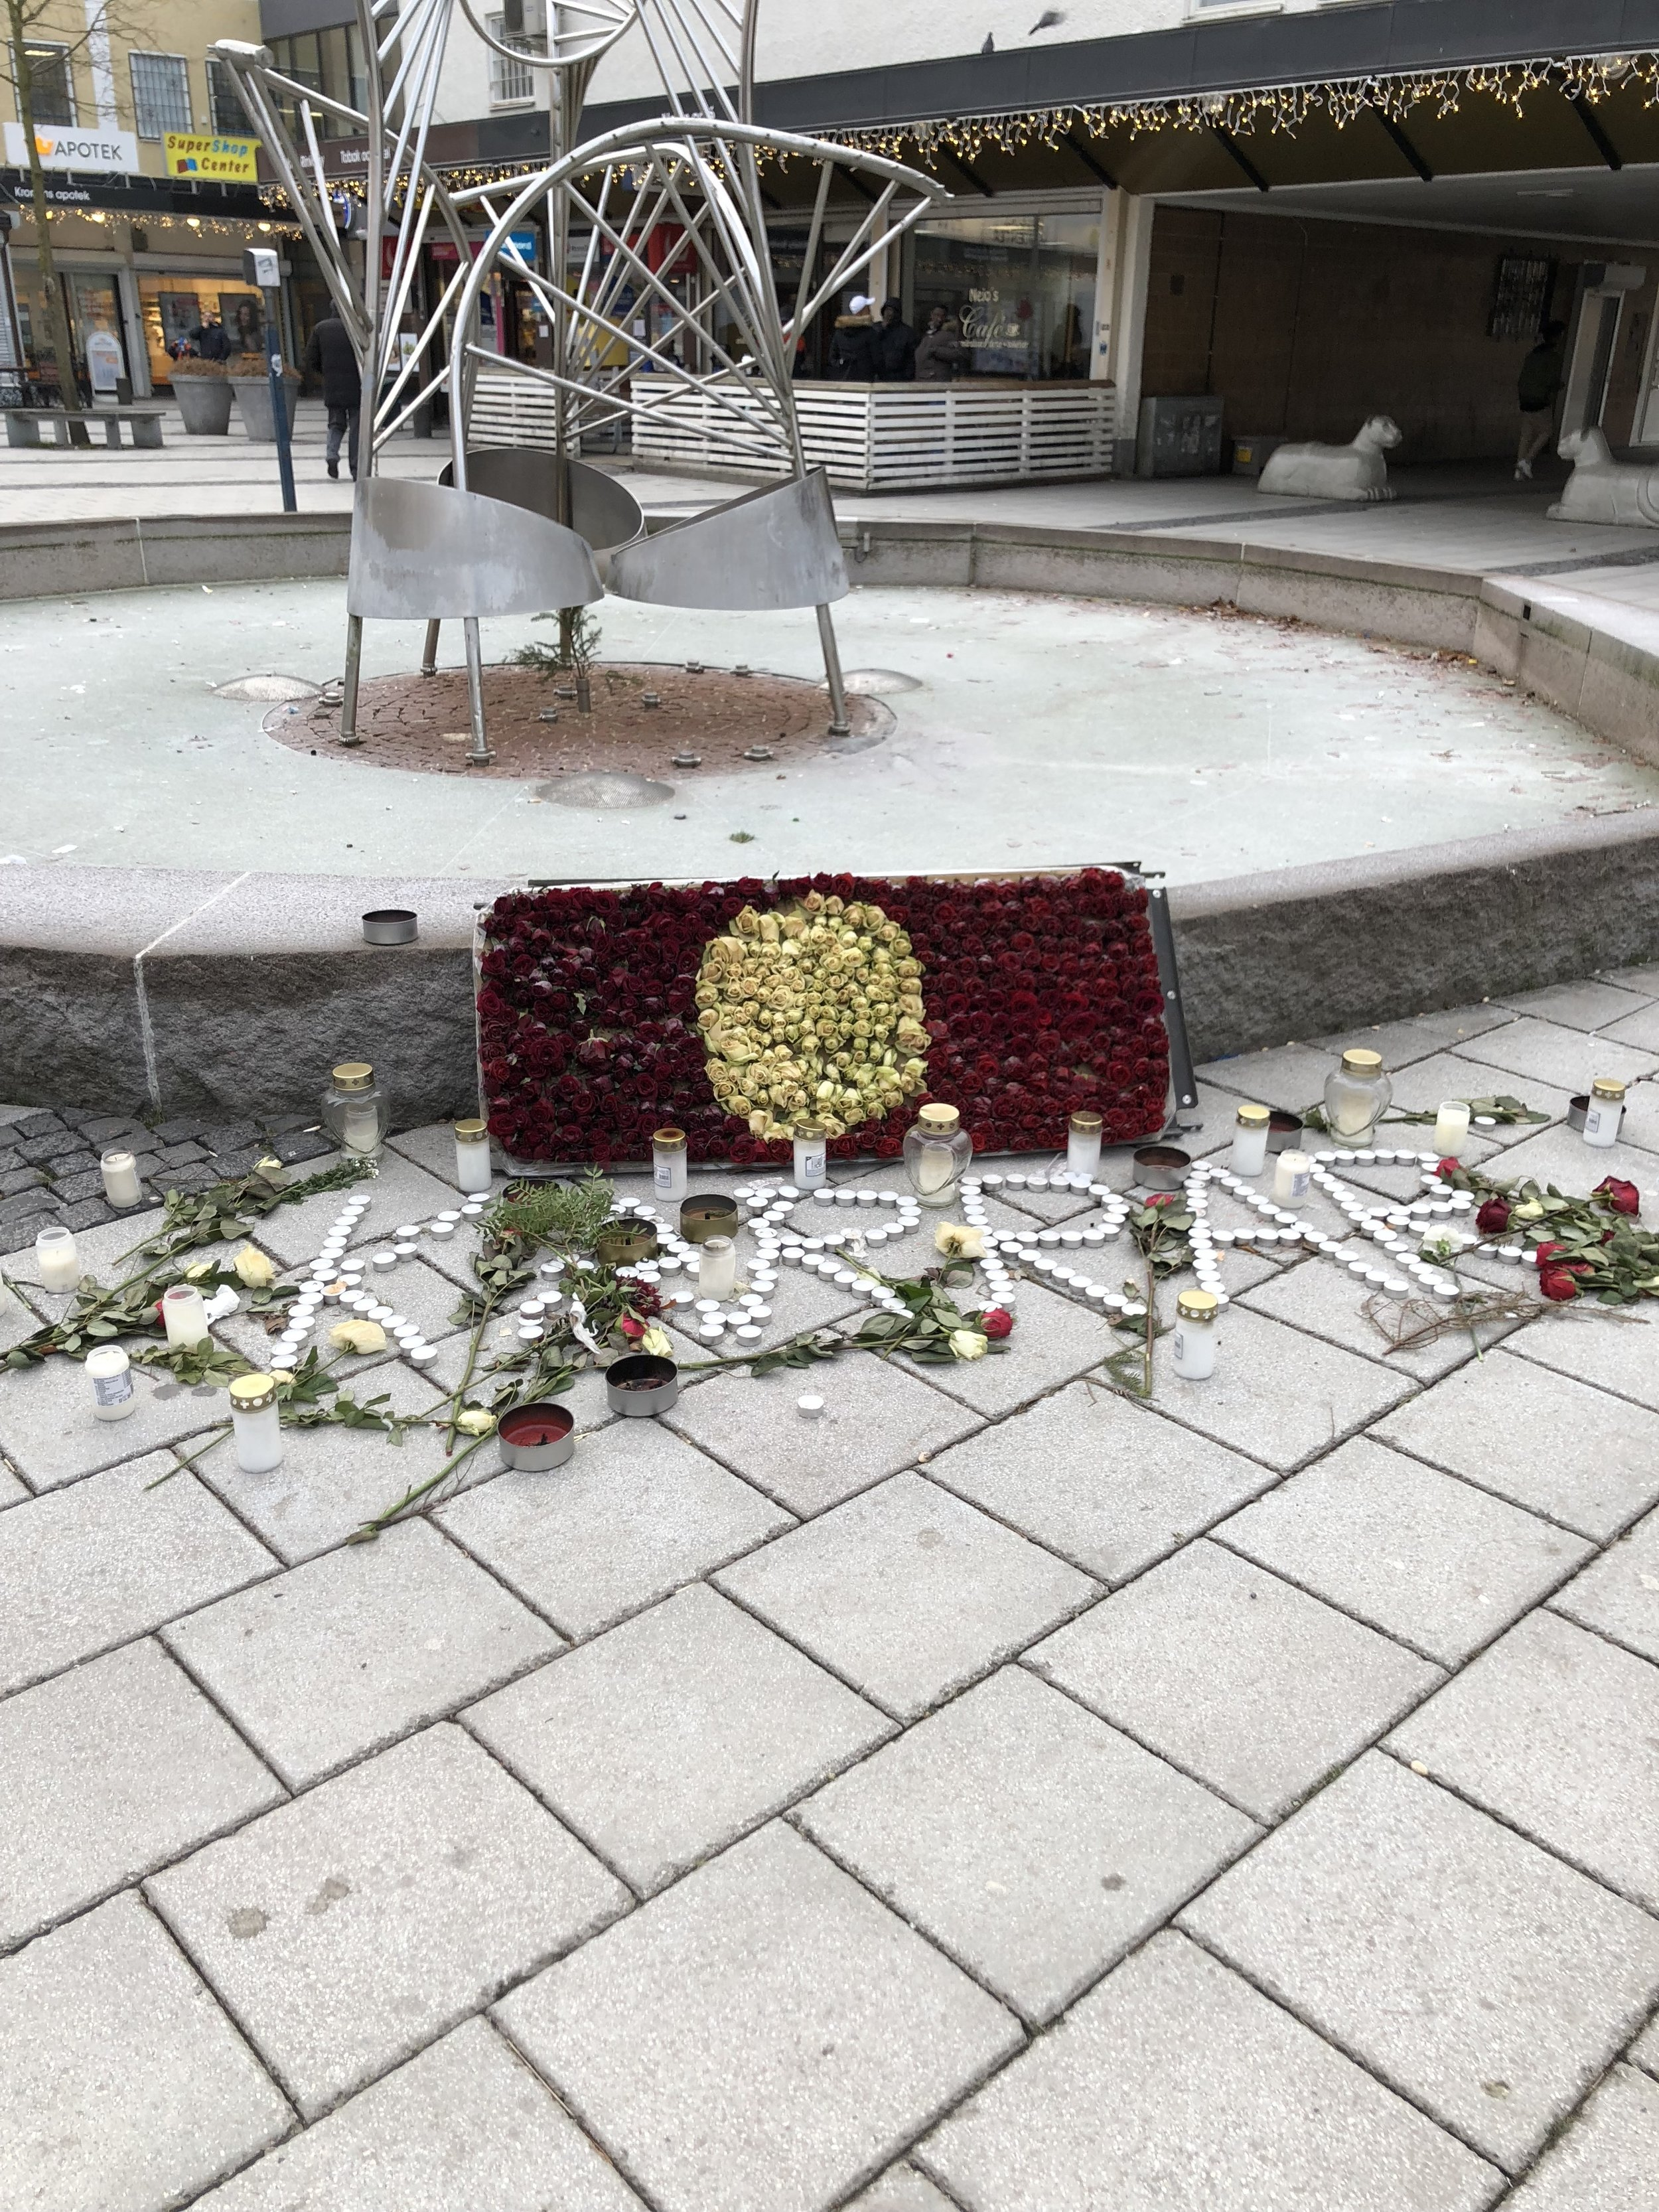 Memorial for young man murdered in same square as pizza shop and mosque approx 10 days ago.